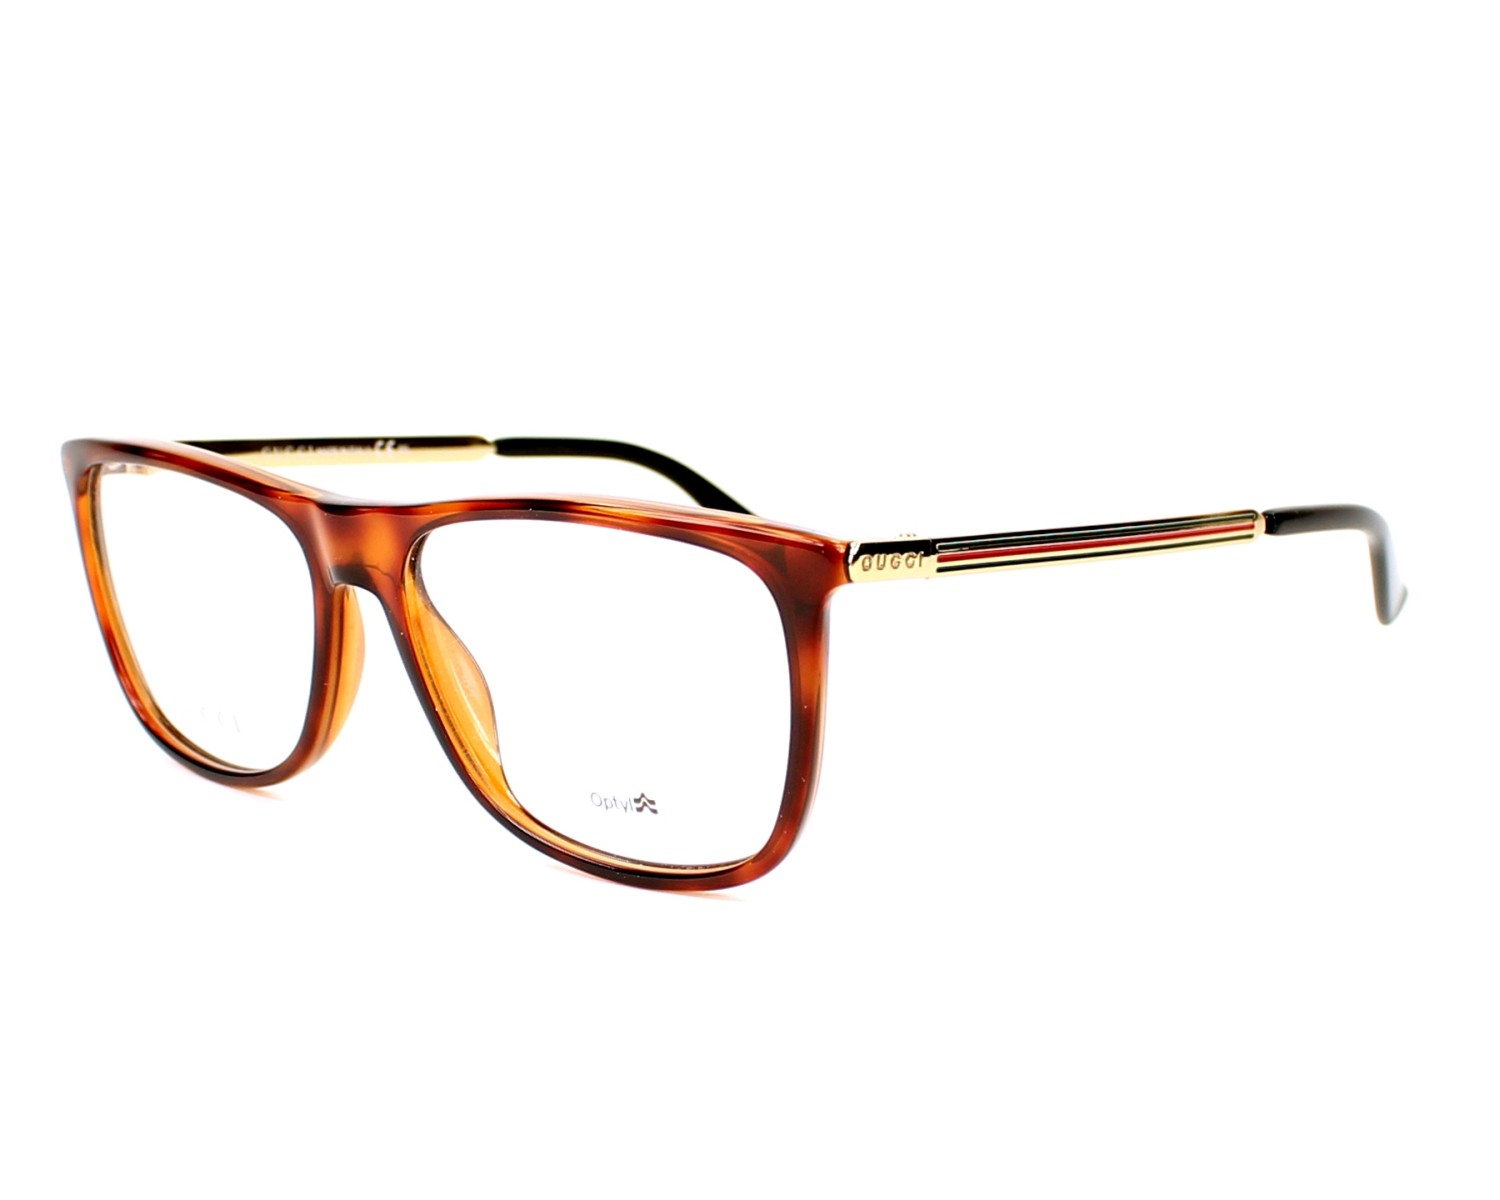 Can Glasses Frames Be Adjusted : Order your Gucci eyeglasses GG 1137 QWP 55 today